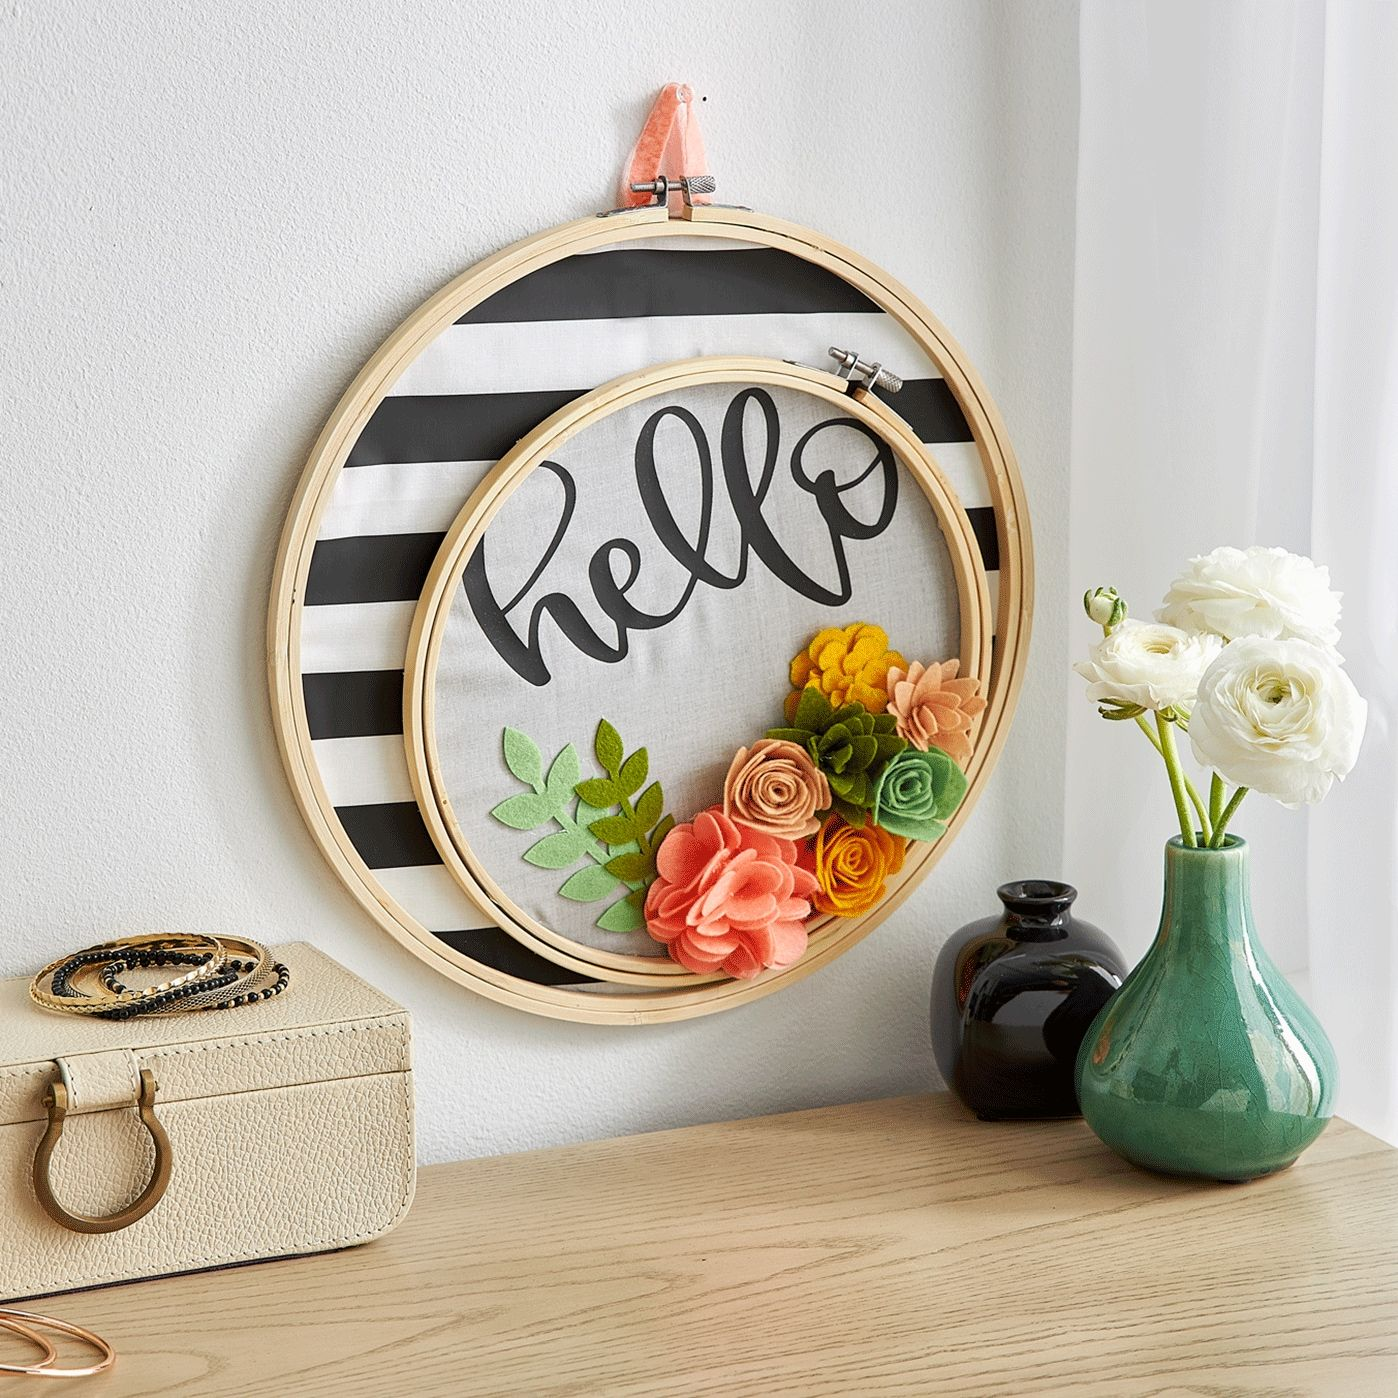 Cricut Maker Champagne In 2020 Embroidery Hoop Decor Embroidery Hoop Wall Art Diy Embroidery Hoop Wall Art